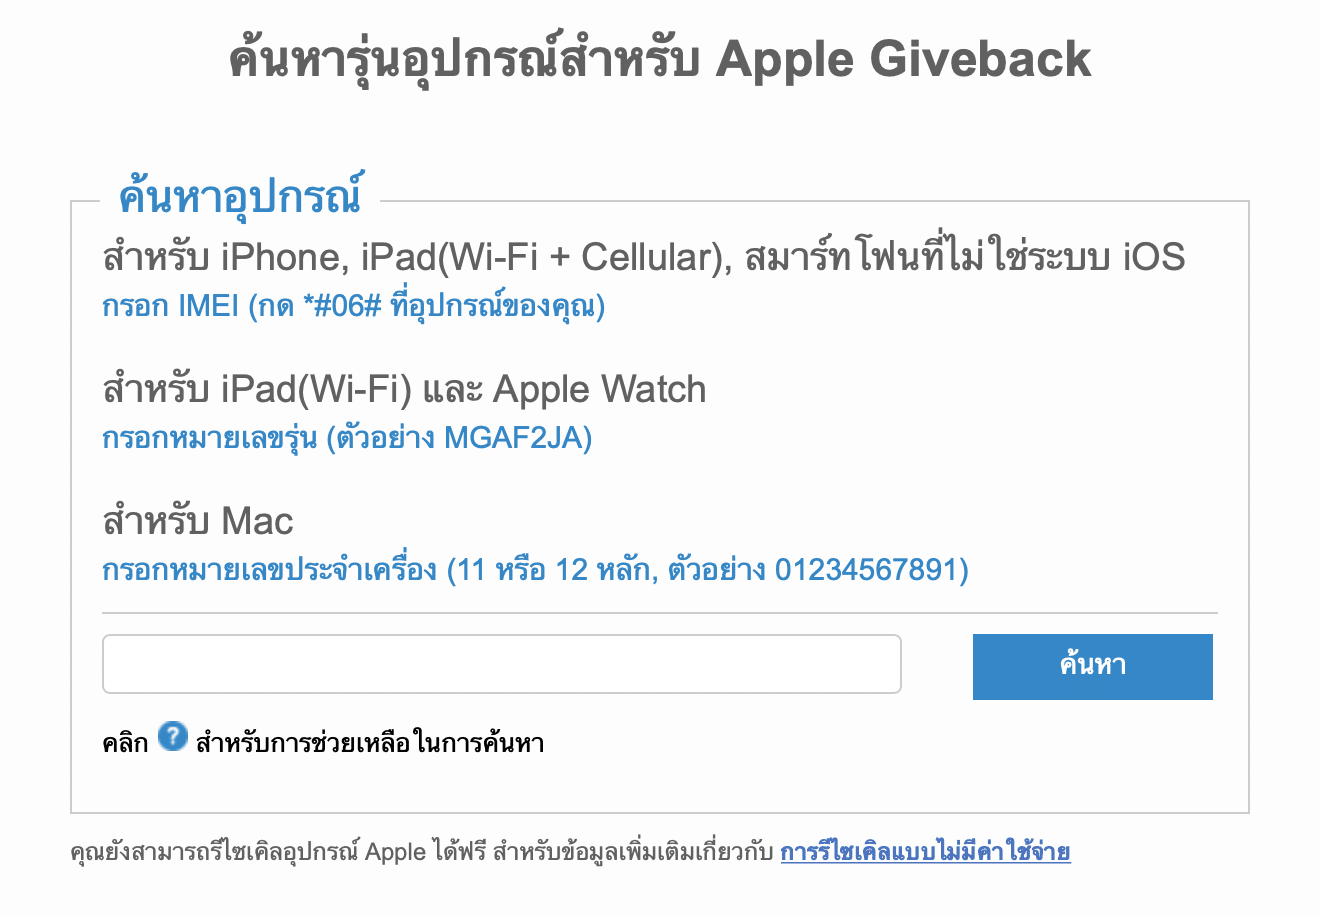 apple-giveback-trade-in-thailand-air-force-one-1